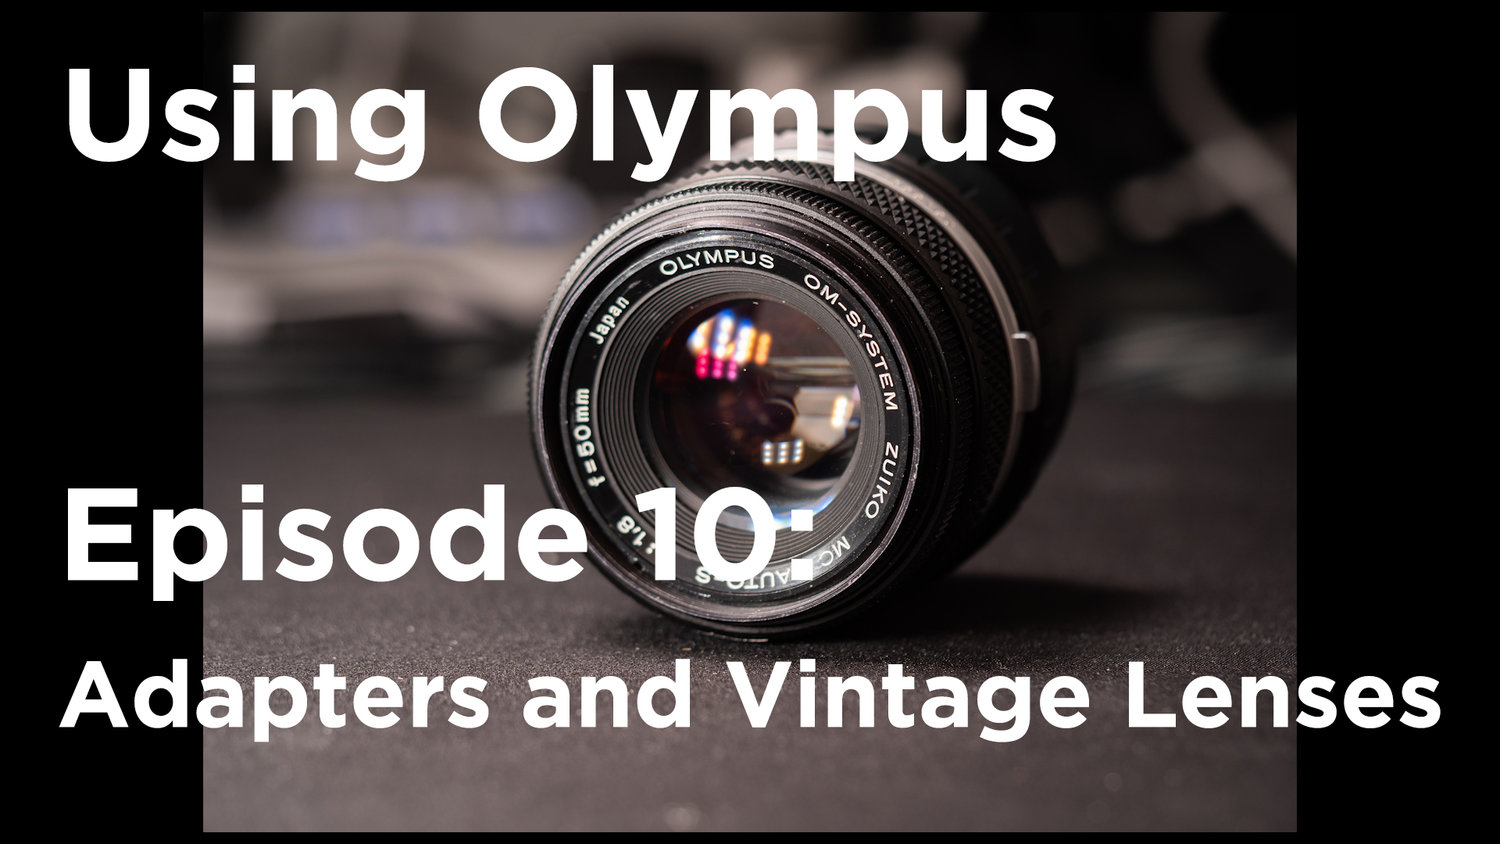 Tutorial - Using Olympus Episode 10: Adapters and Vintage lenses.